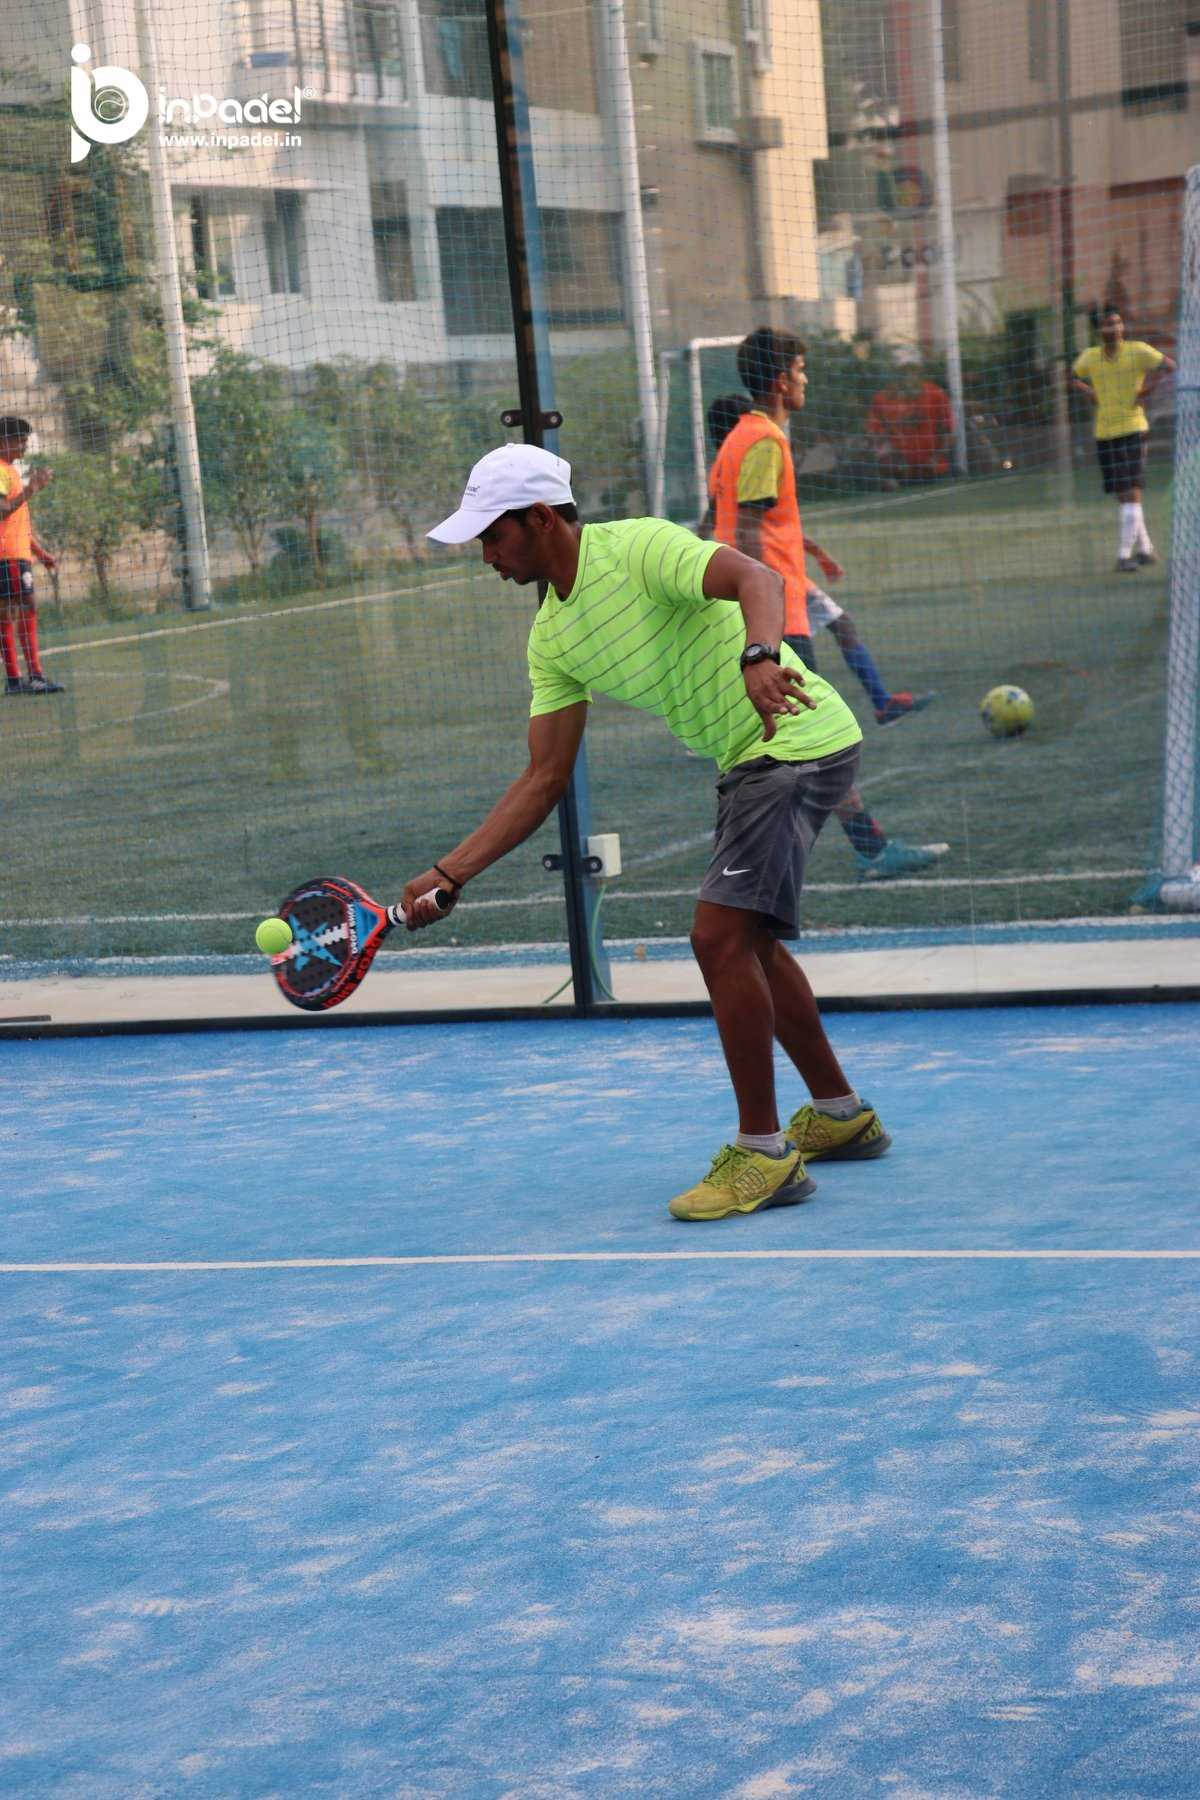 InPadel 1Yr Celebration of Padel in INDIA - Padel - Padel India (93)